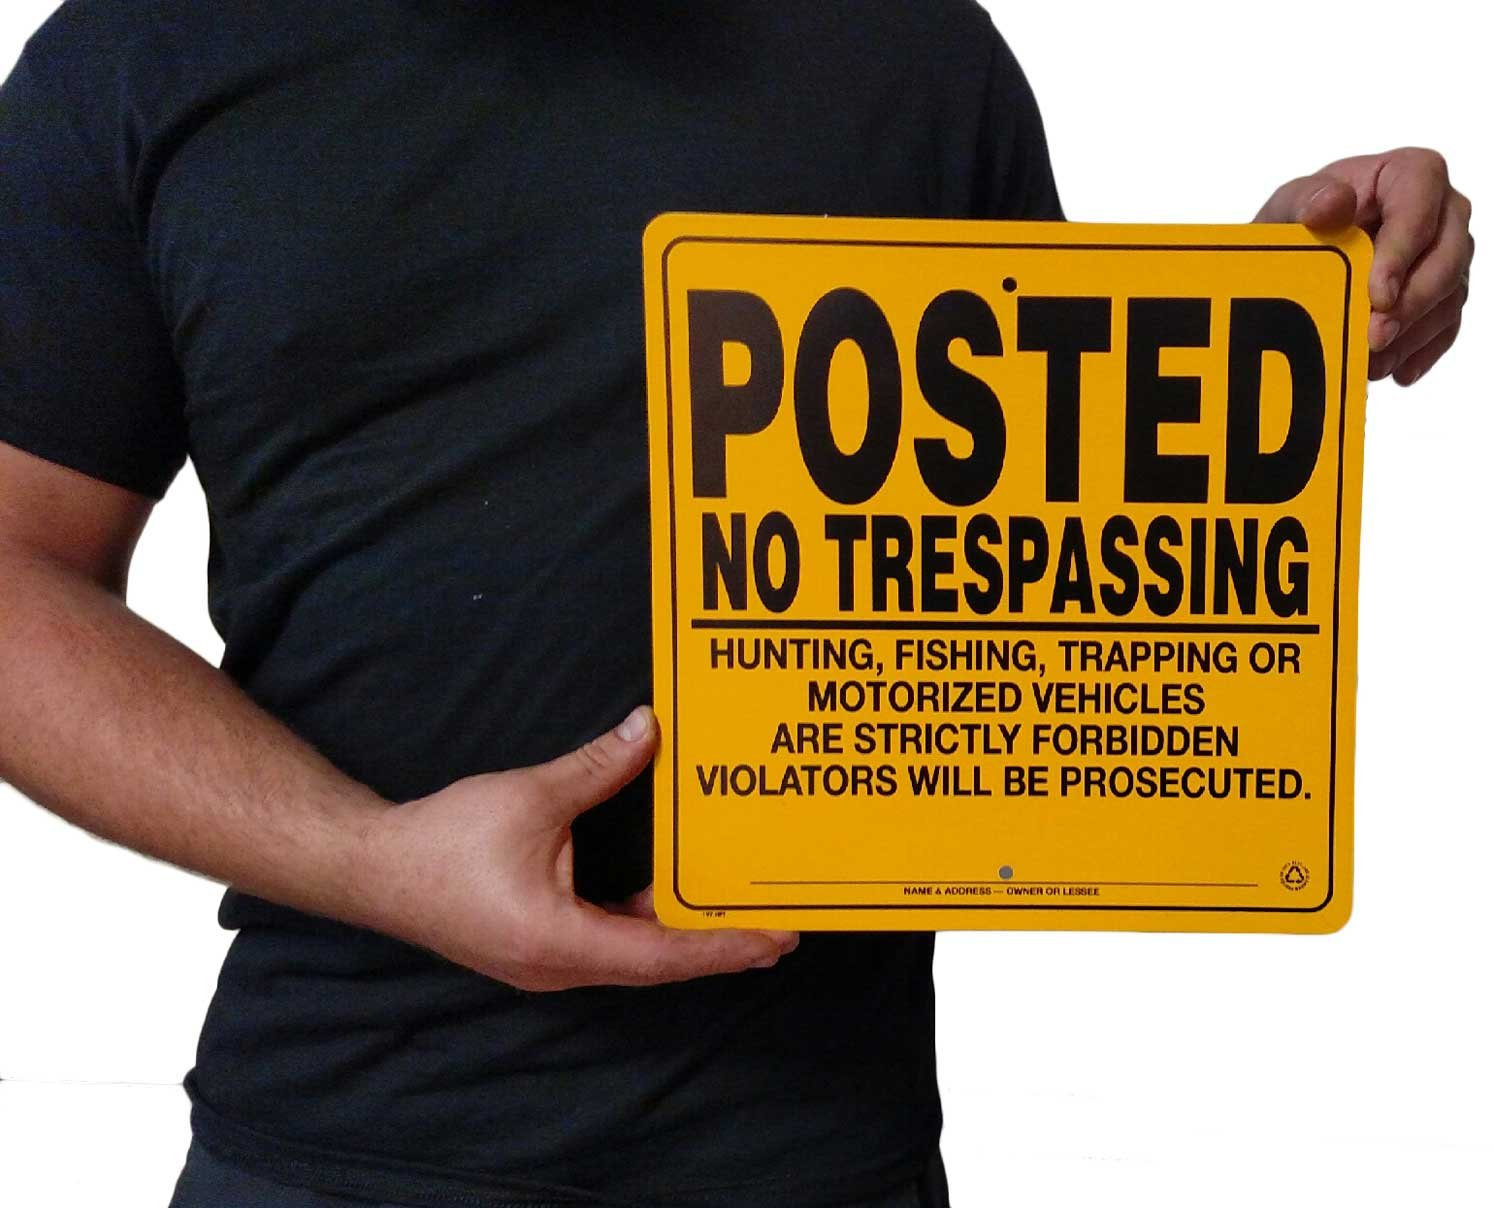 Heavy Gauge .032 Self Supporting Aluminum Posted No Trespassing Sign 12 x 12 Yellow